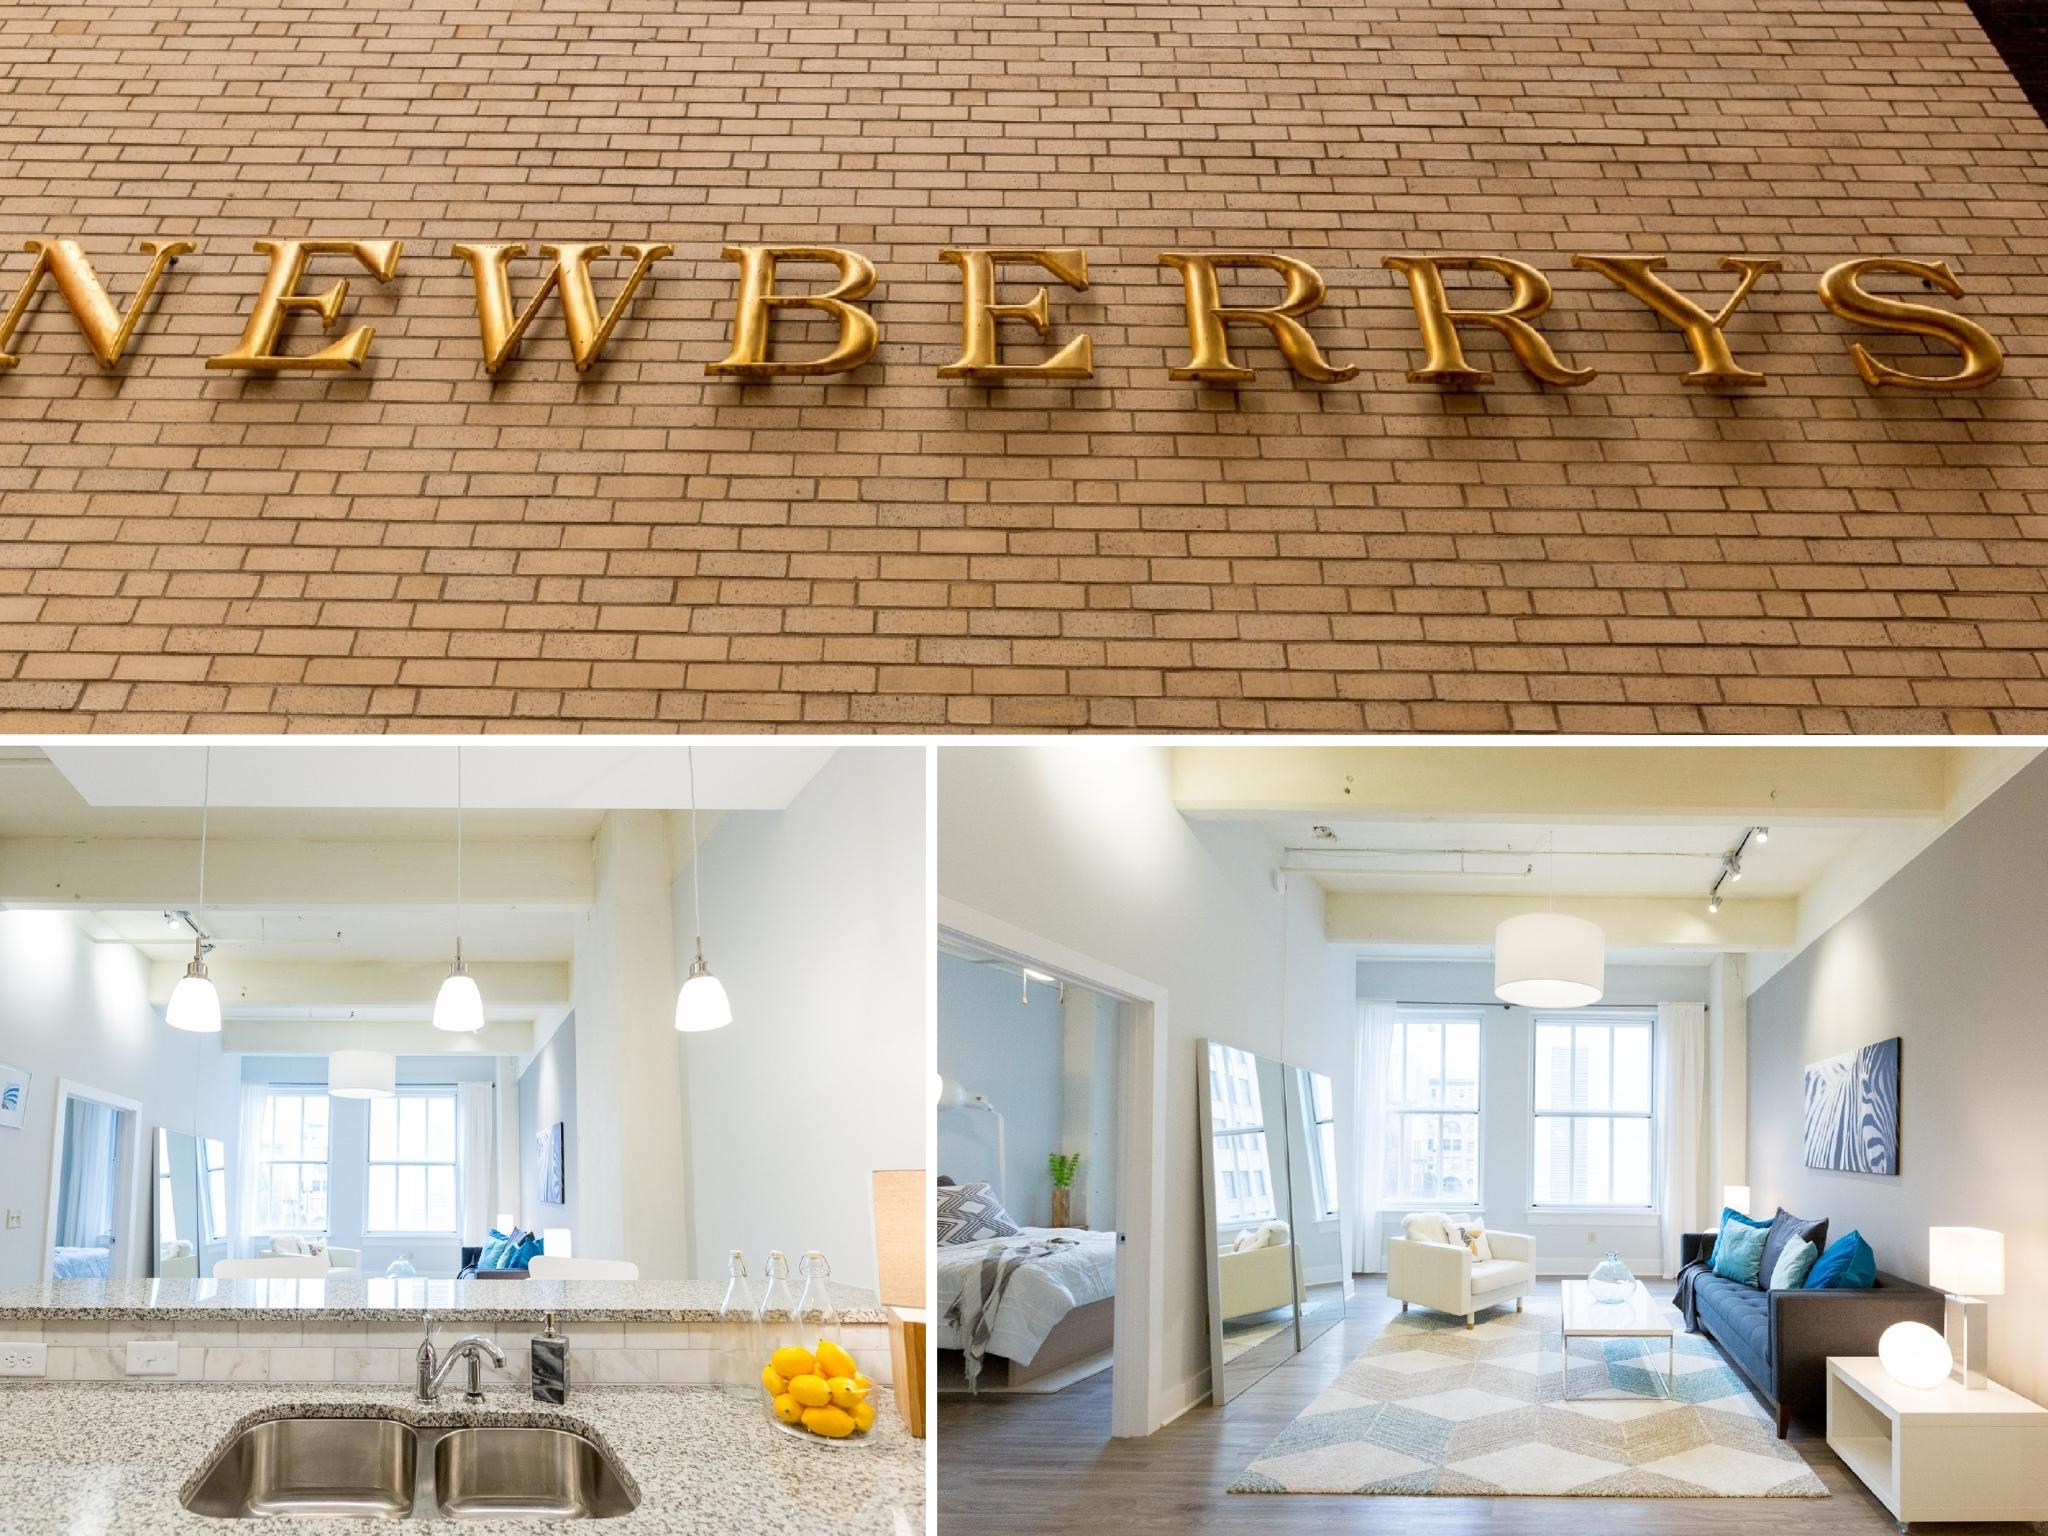 NEWBERRY LOFTS (After) / ADDRESS: 34 W 6th Street (45202) / CREDIT: $982,295 / PREVIOUSLY: The Merchants Building / Images: Danel Smyth